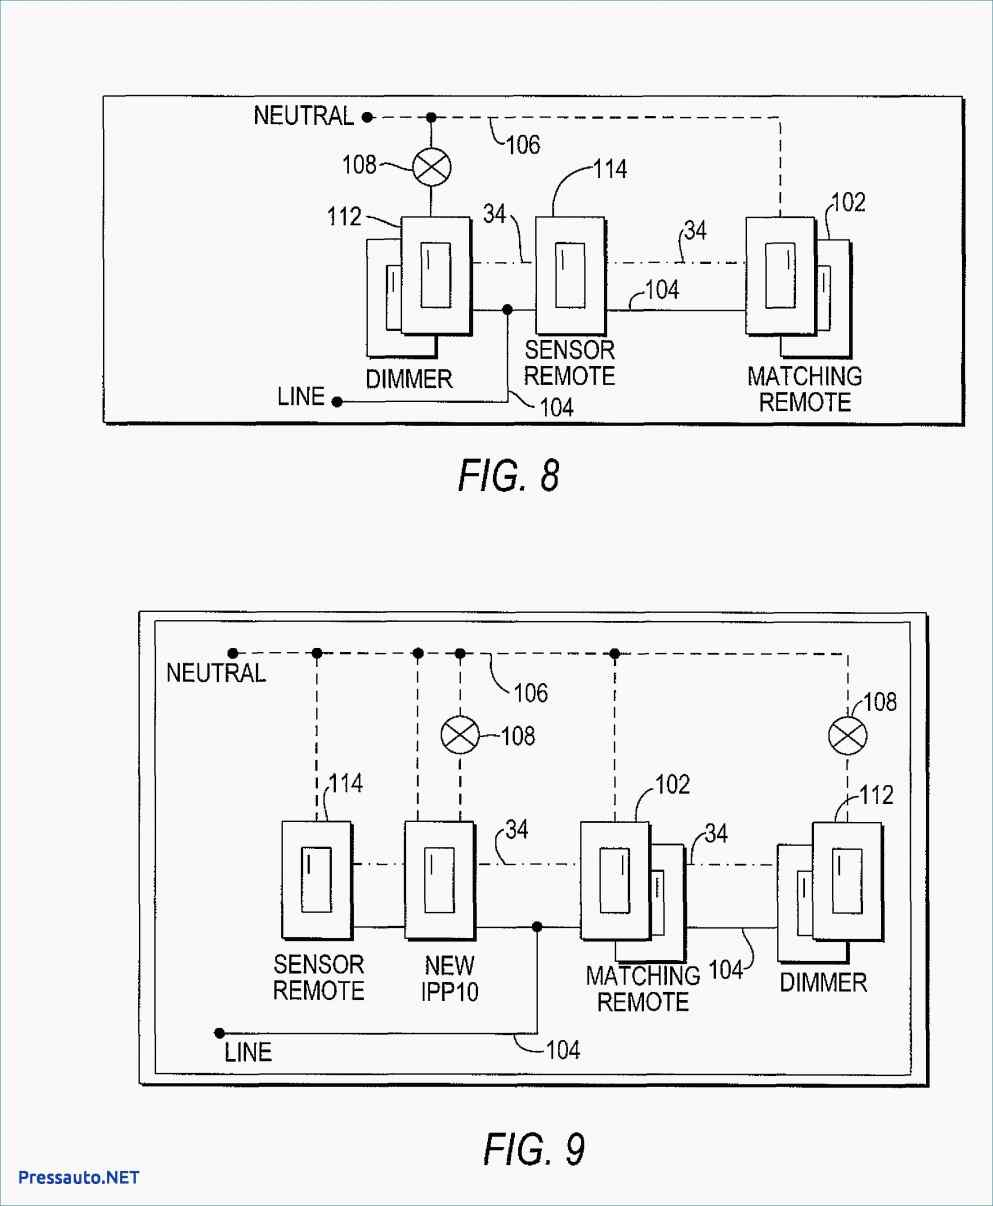 Lutron way dimmer switch wiring diagram wiring diagram way switch beautiful  lutron diva way dimmer wiring